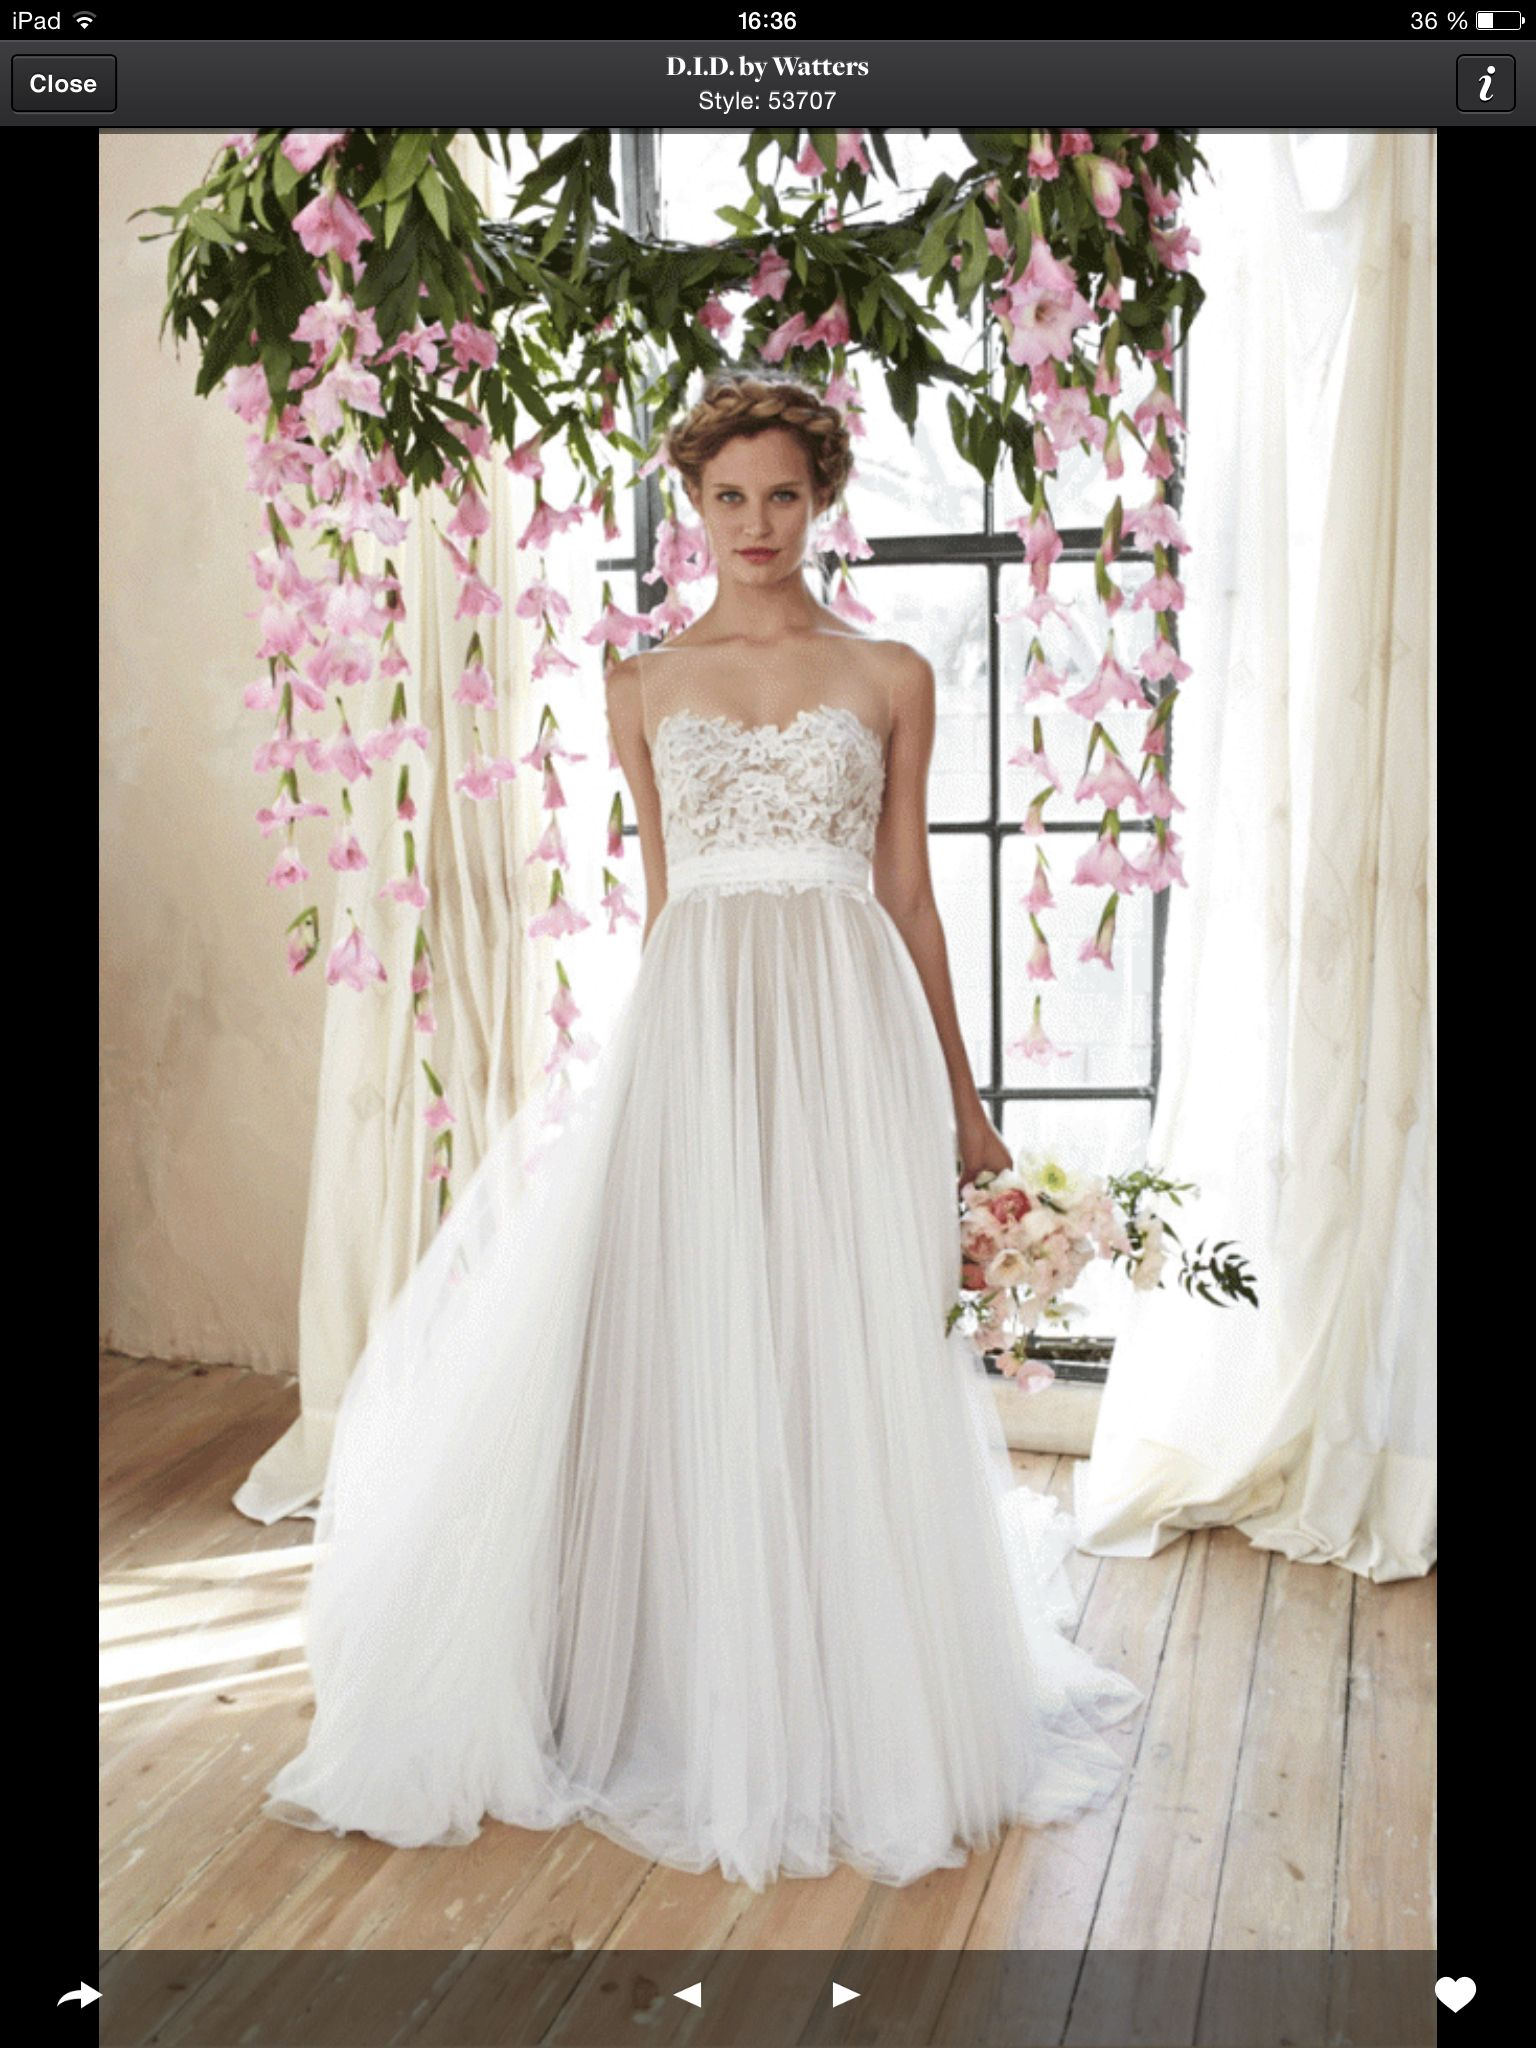 Feenkleid weddingdress pinterest